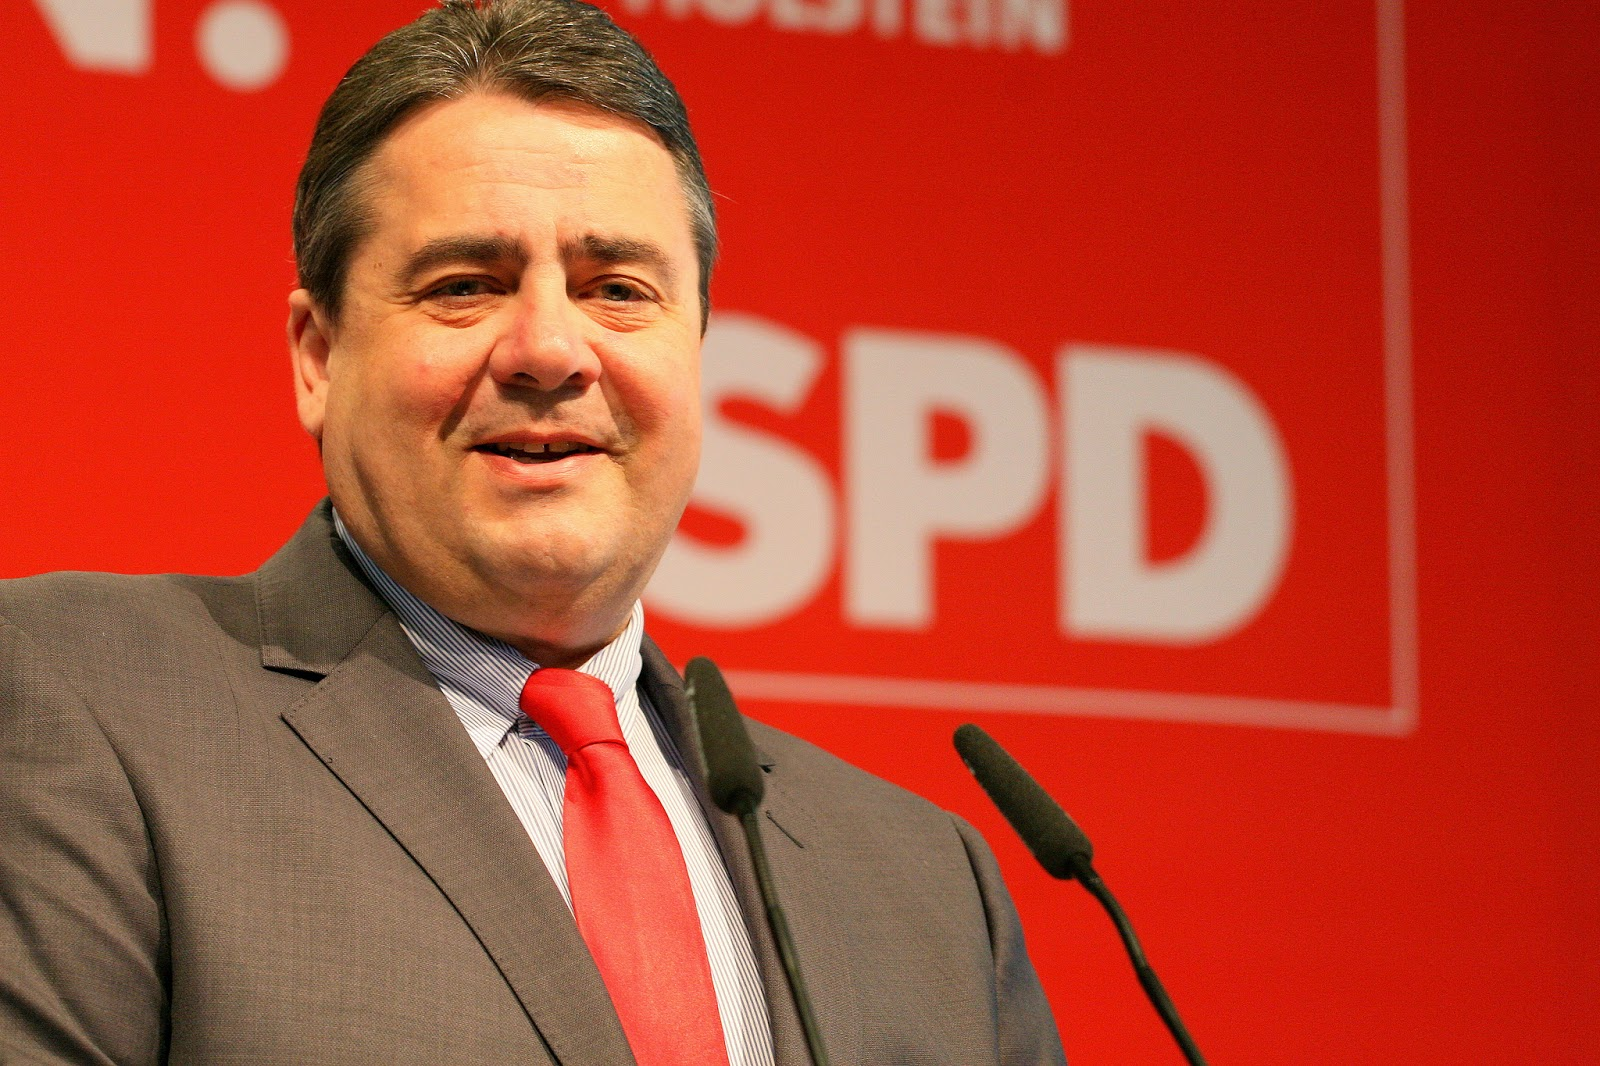 Sigmar Gabriel officially changes its name TTIP in order